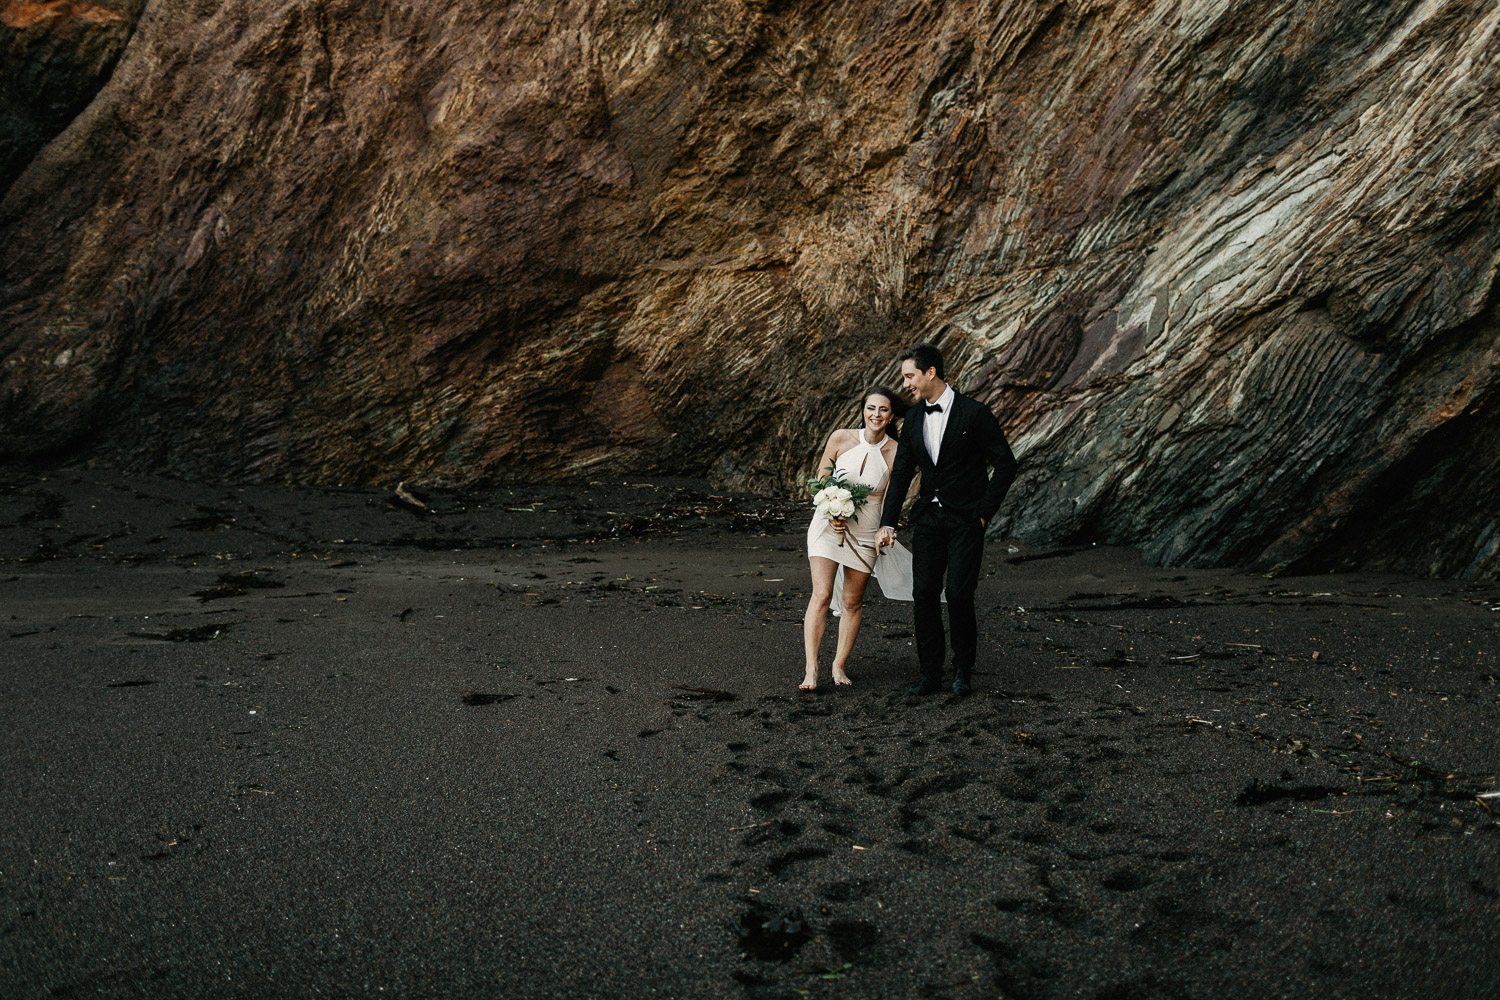 Image of groom and bride walk together on beach